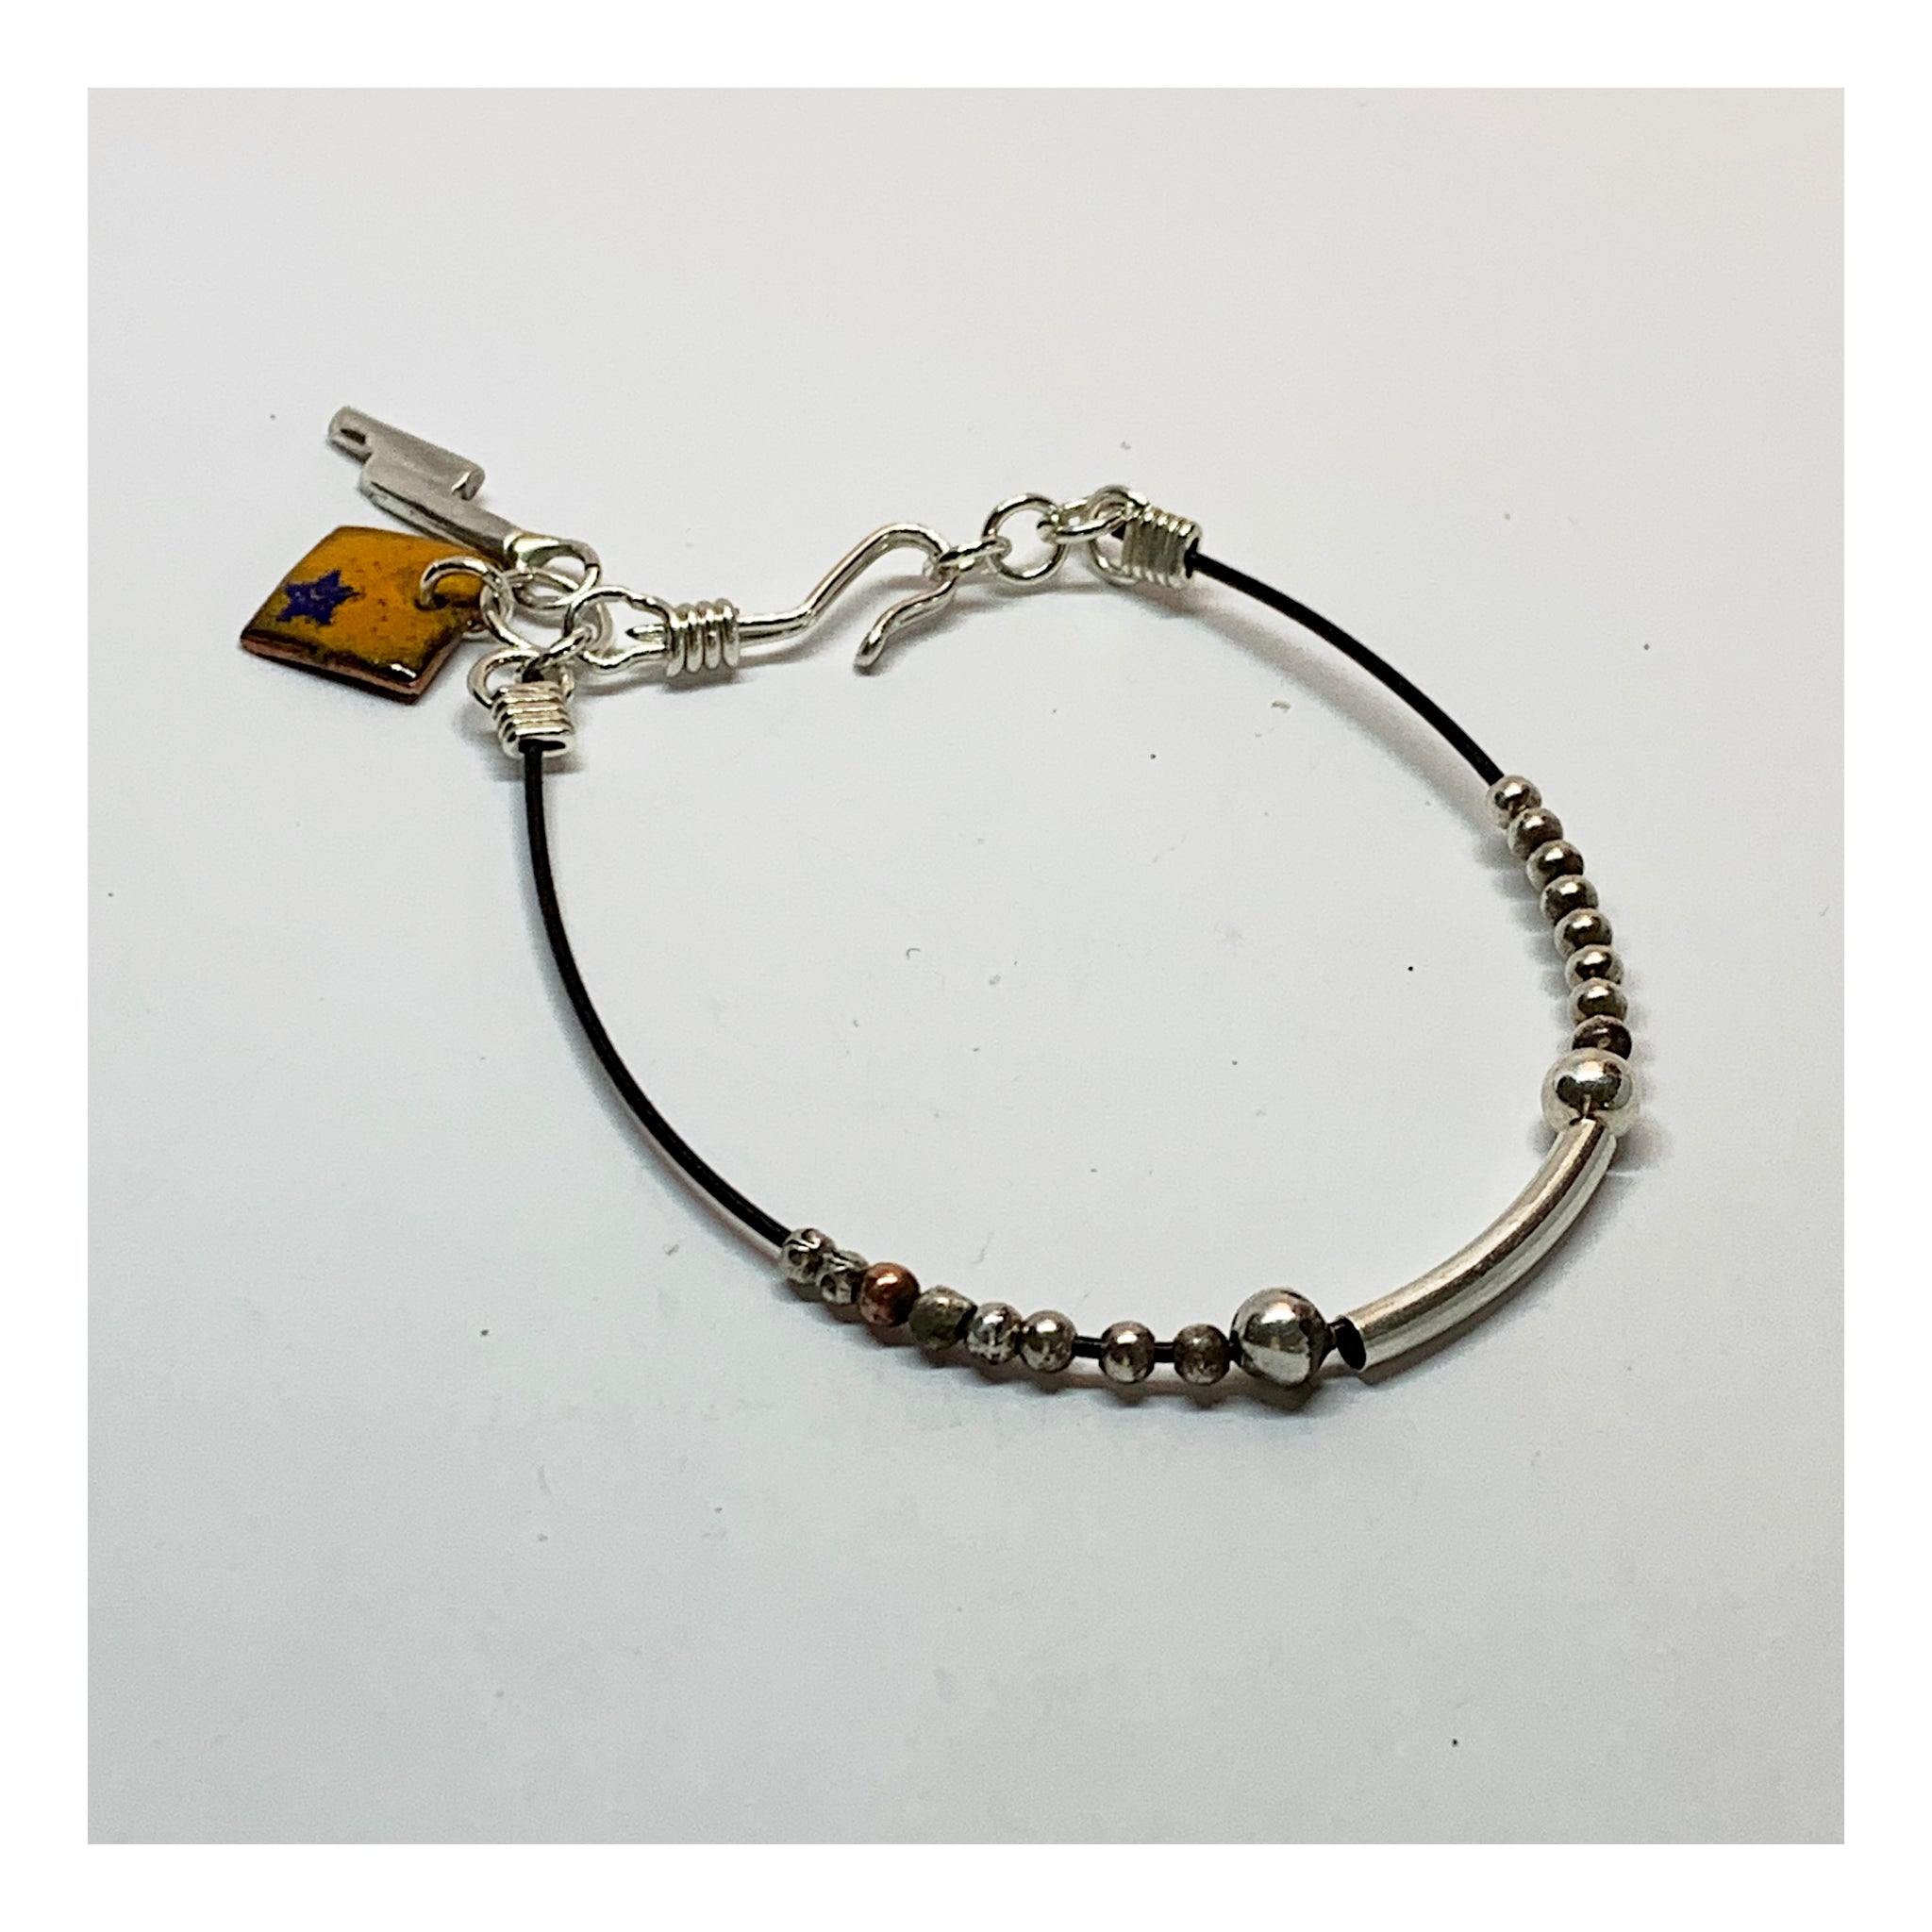 Unusual Silver bead Bracelet with Random Charms